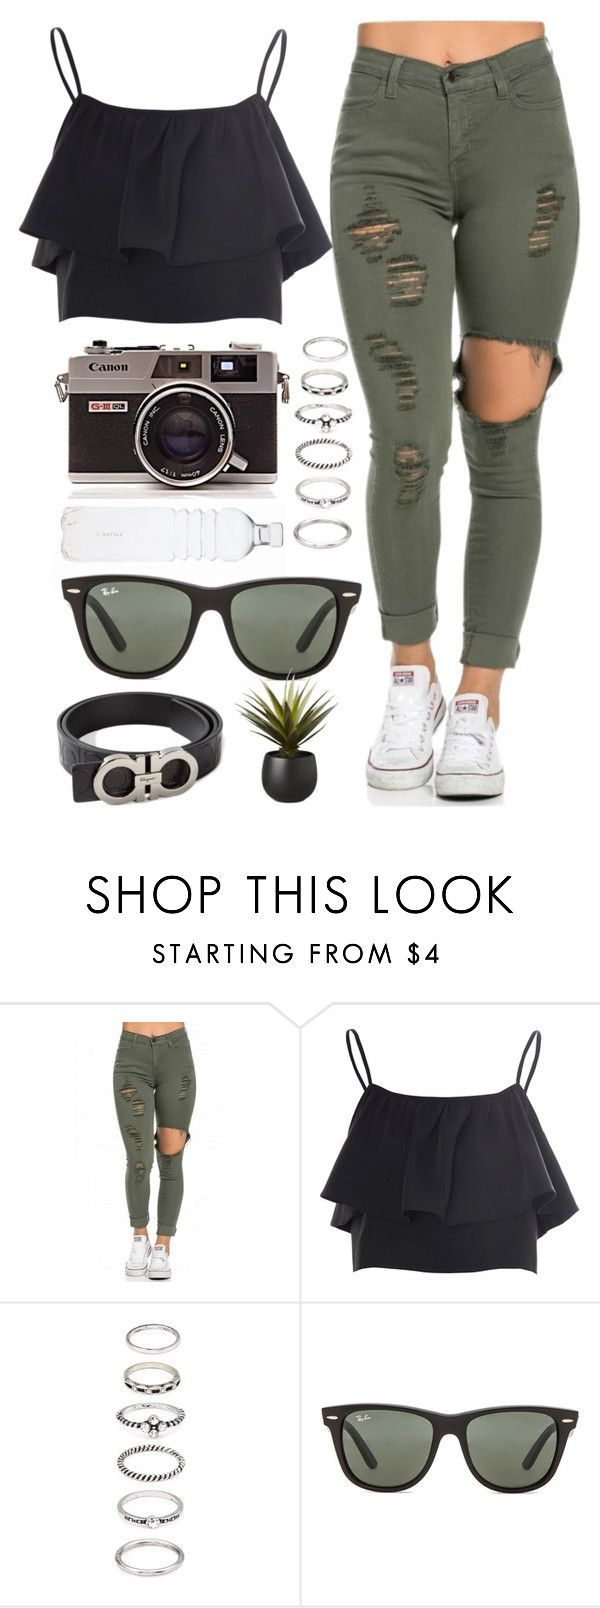 """The amusement park with Shawn Mendes"" by katerinabocharova ❤ liked on Polyvore featuring Glamorous, Forever 21, Ray-Ban, Salvatore Ferragamo and CB2"